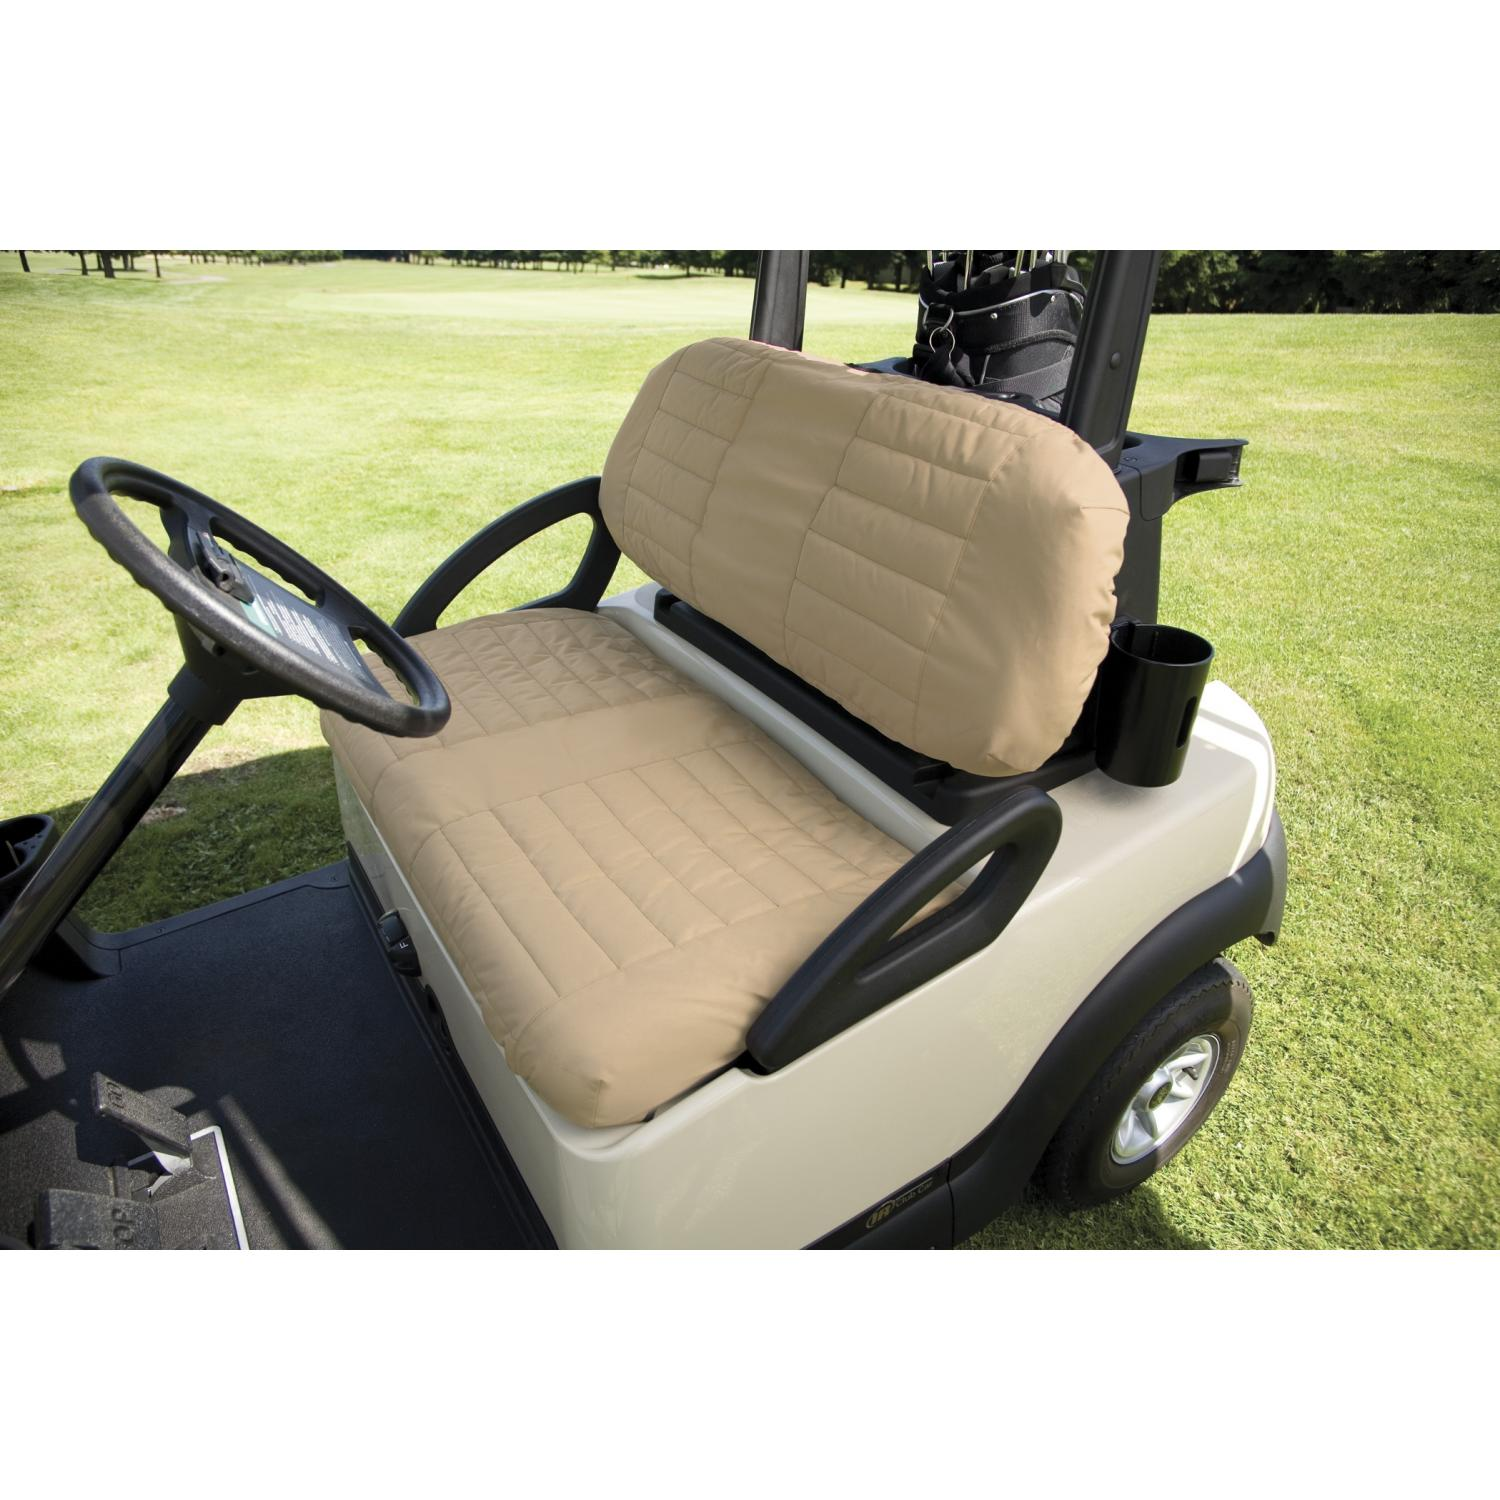 Classic Accessories Padded Golf Car Seat Cover - Sand